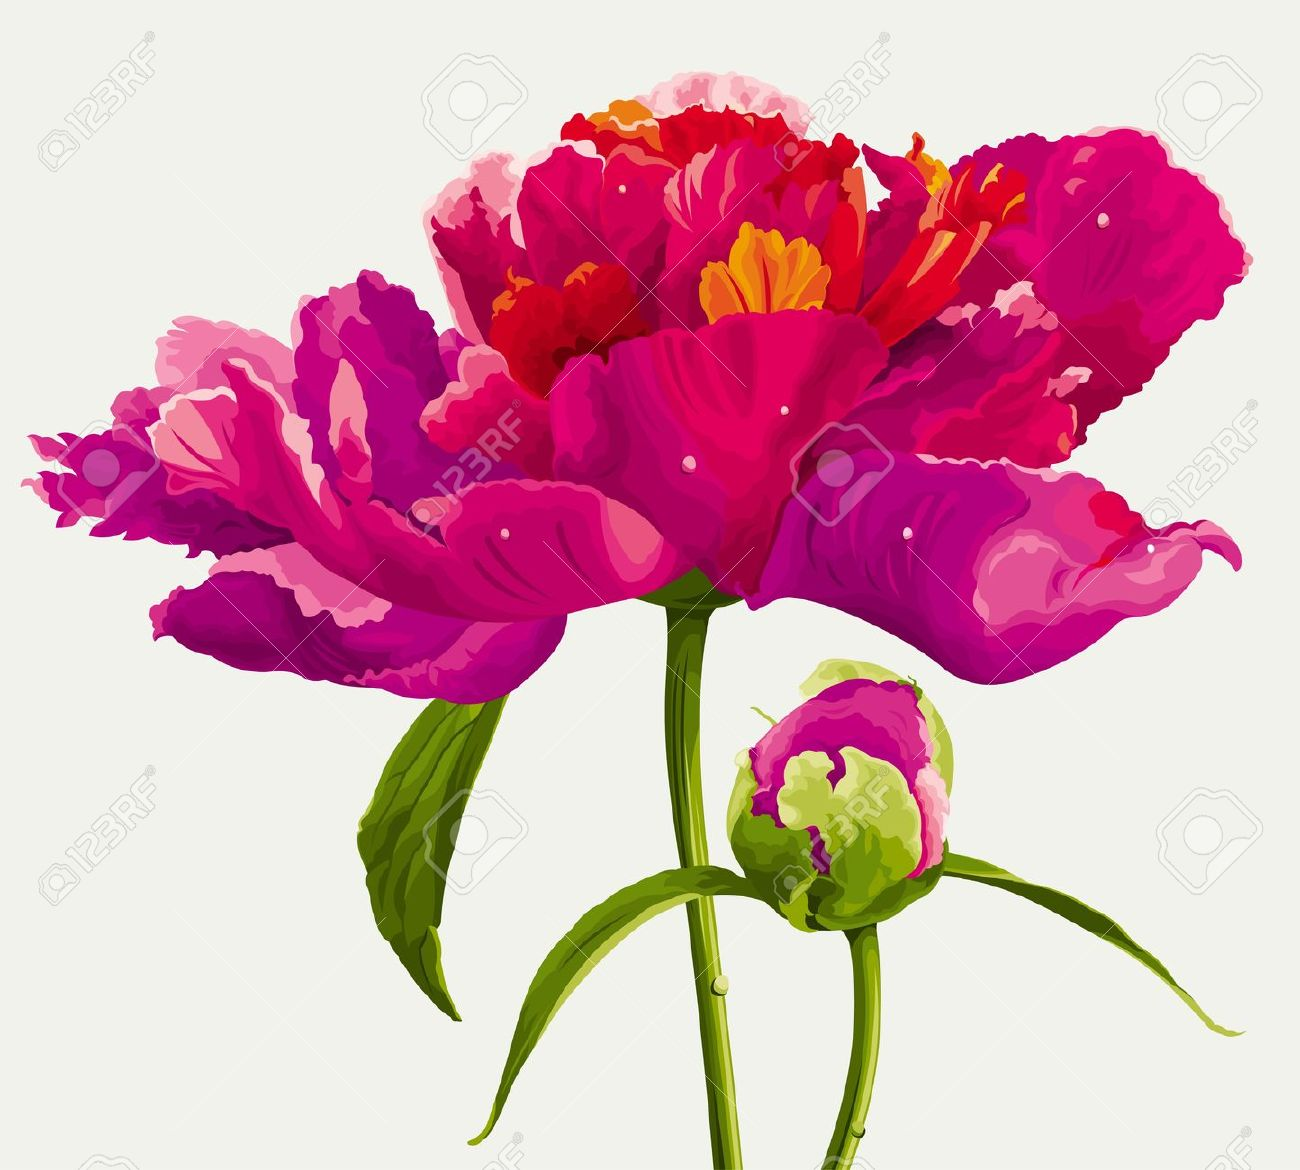 Luxurious Red Peony Flower And The Bud Painted In Bright Colors.